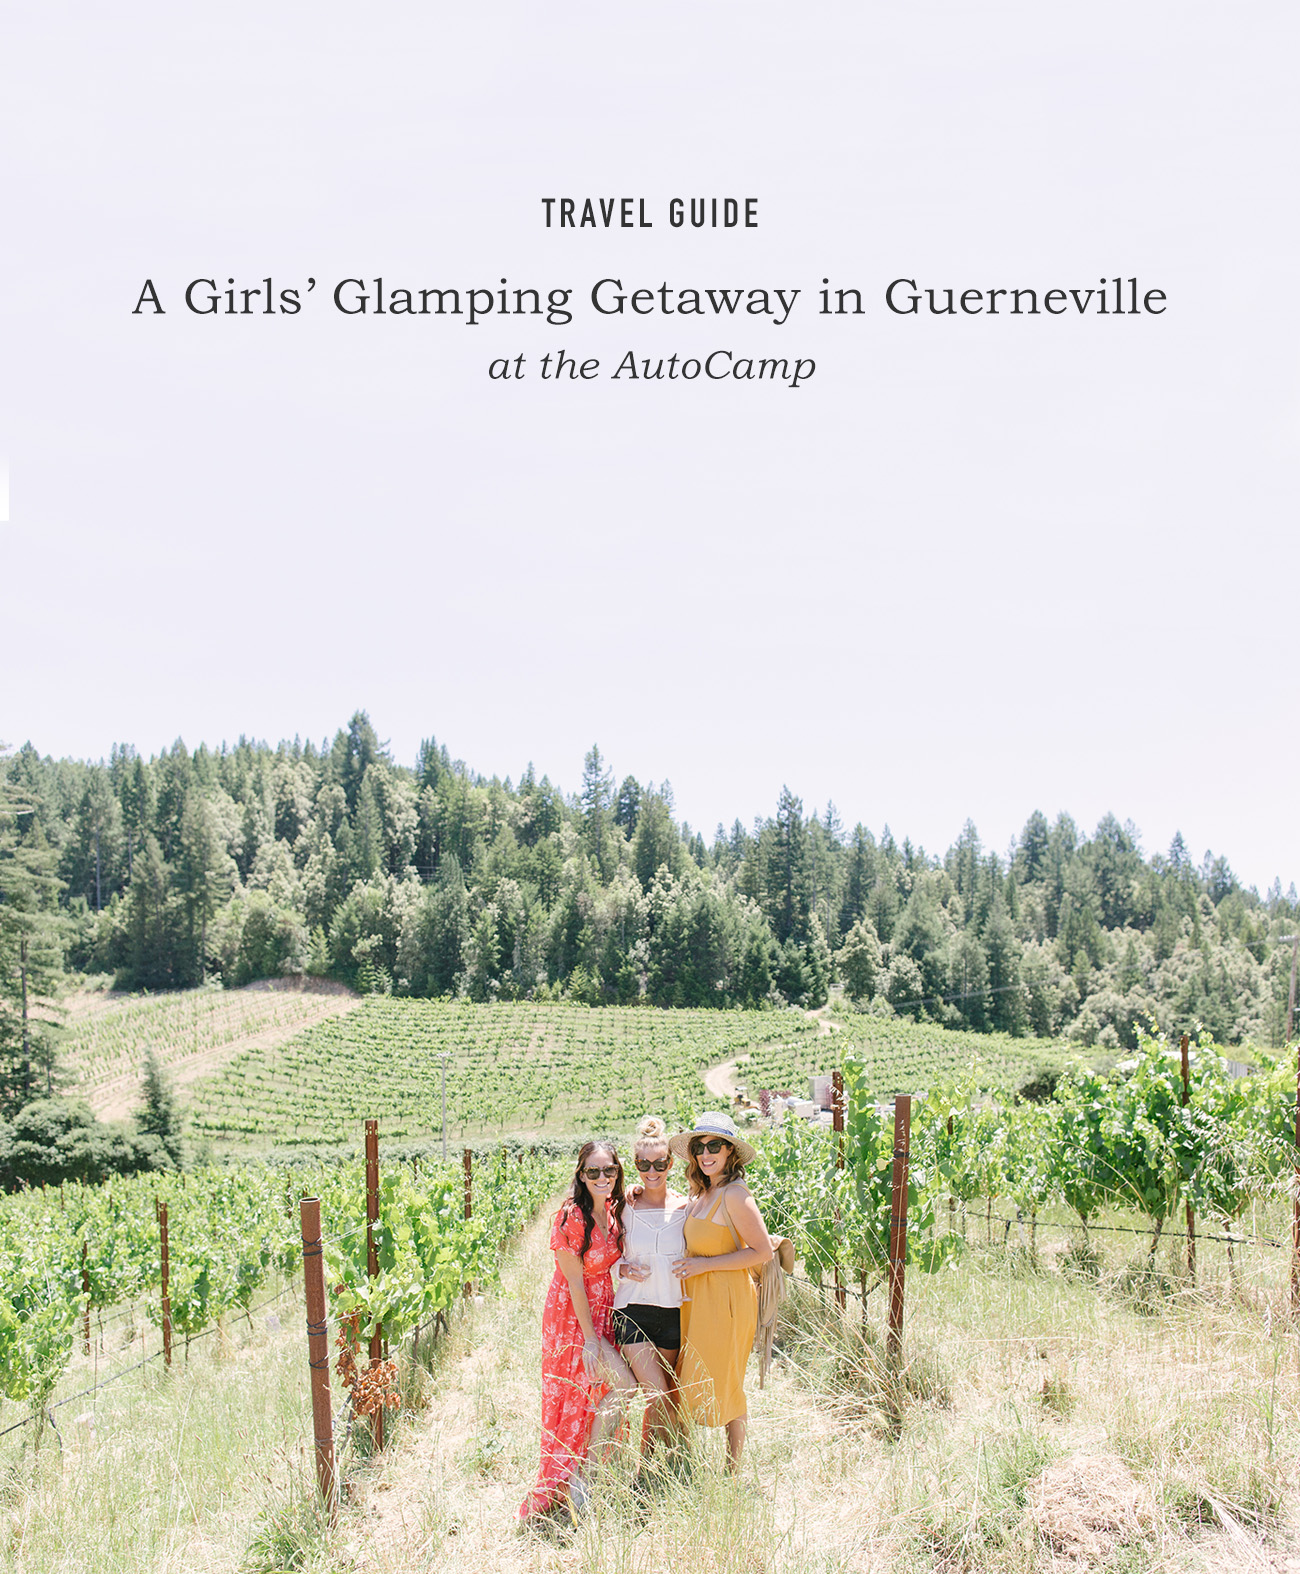 Girls' Glamping Getaway at Autocamp